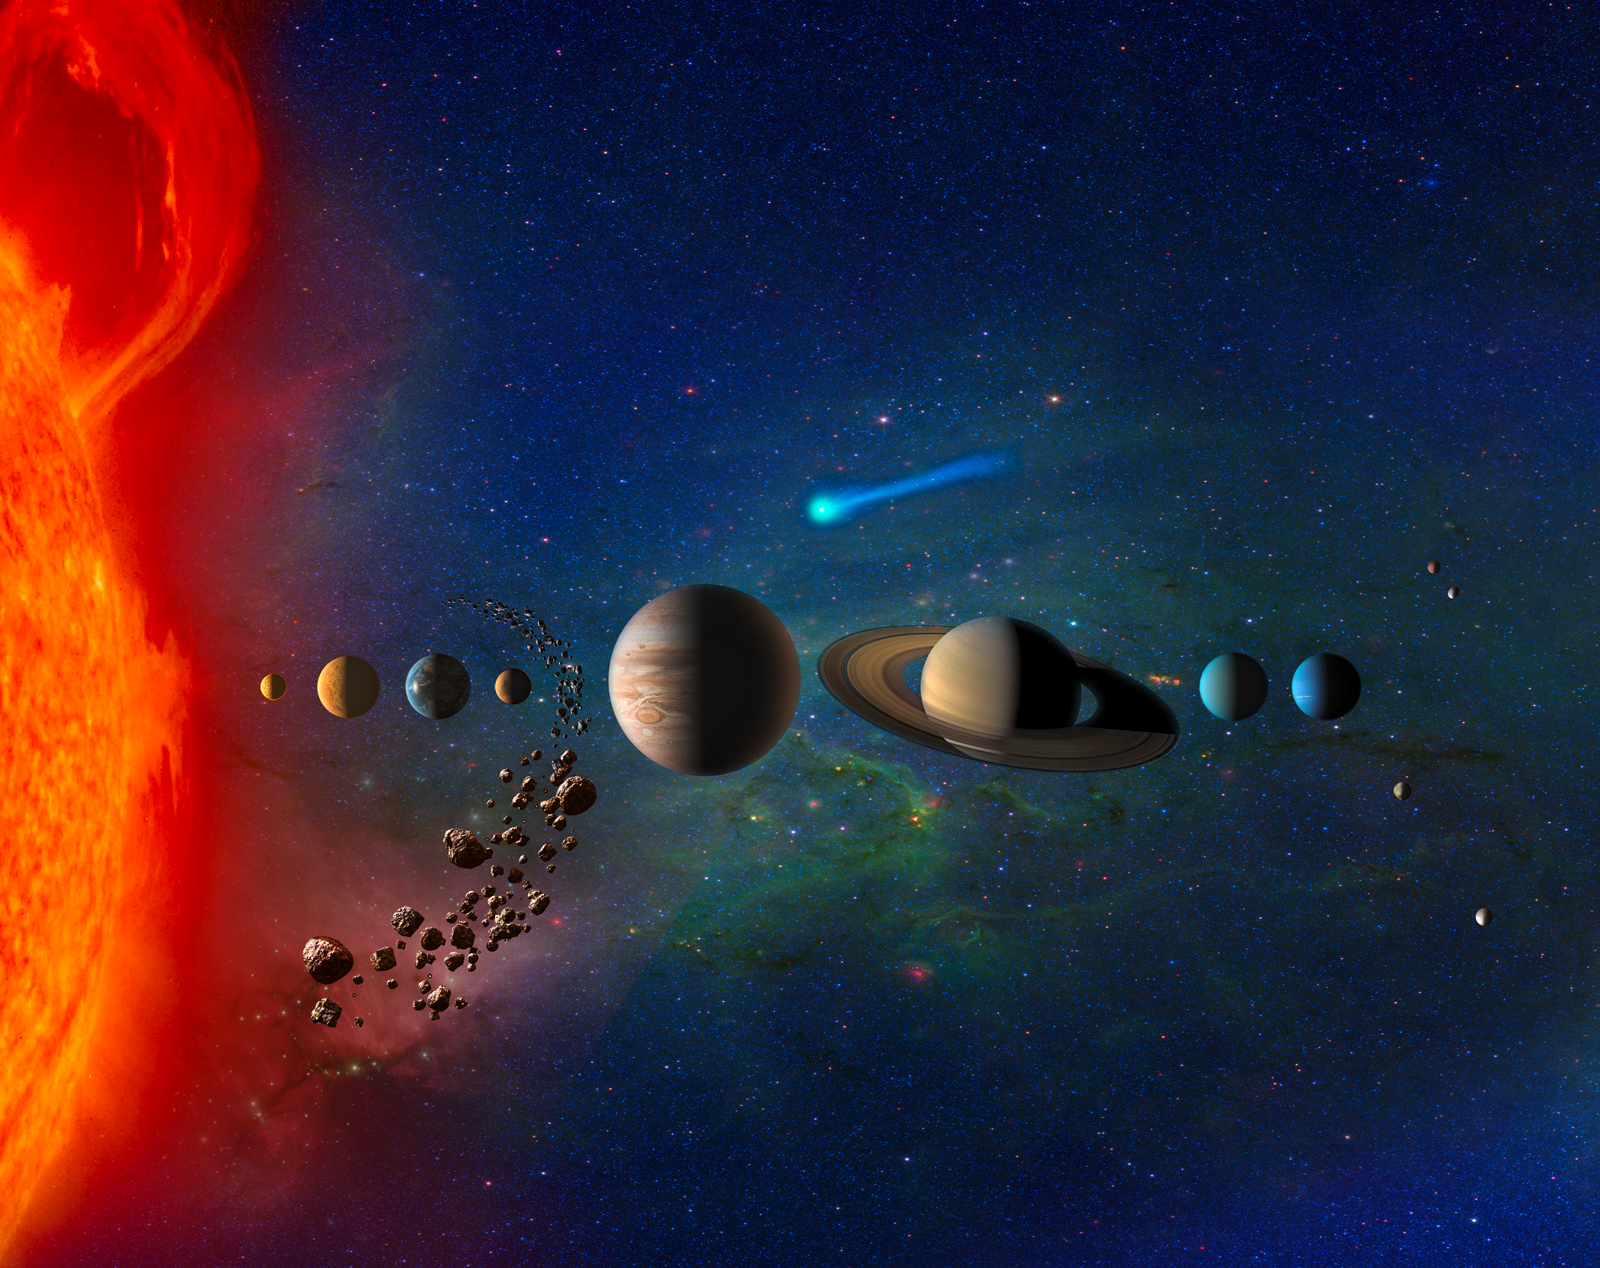 an artistic rendering of our solar system